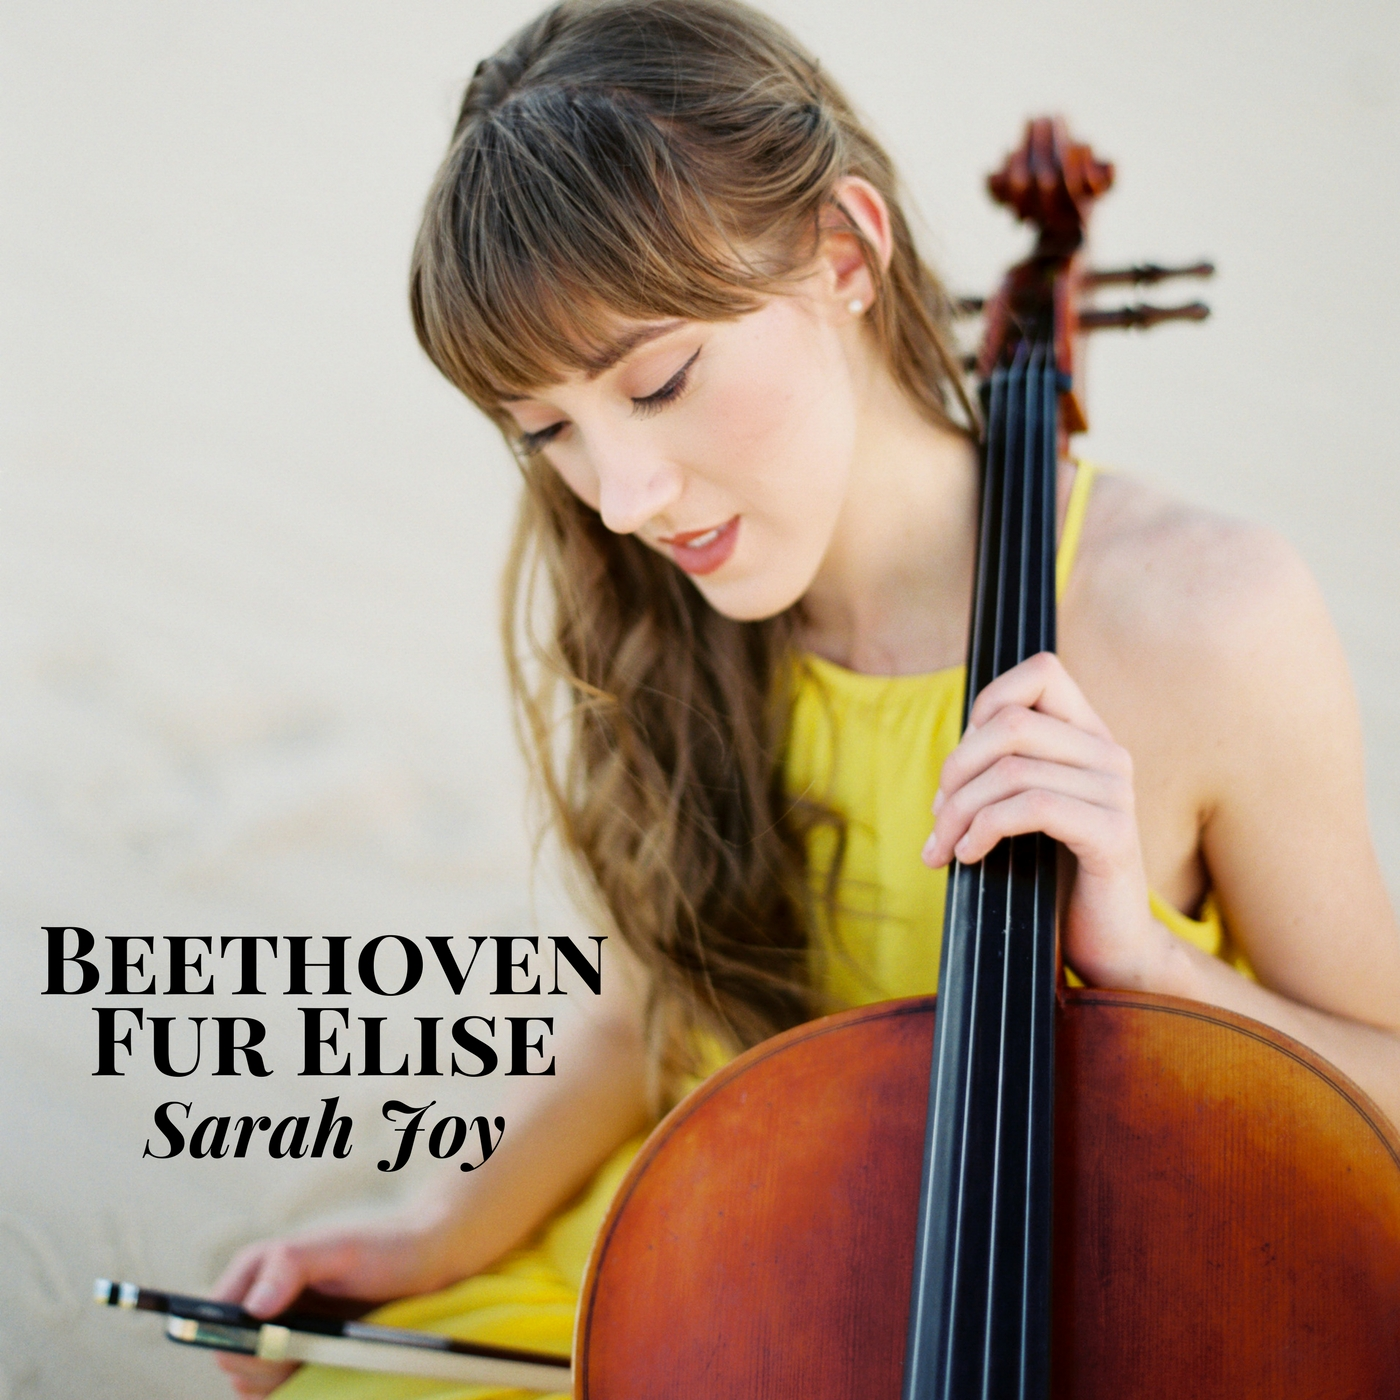 Beethoven - Fur Elise (cello version)